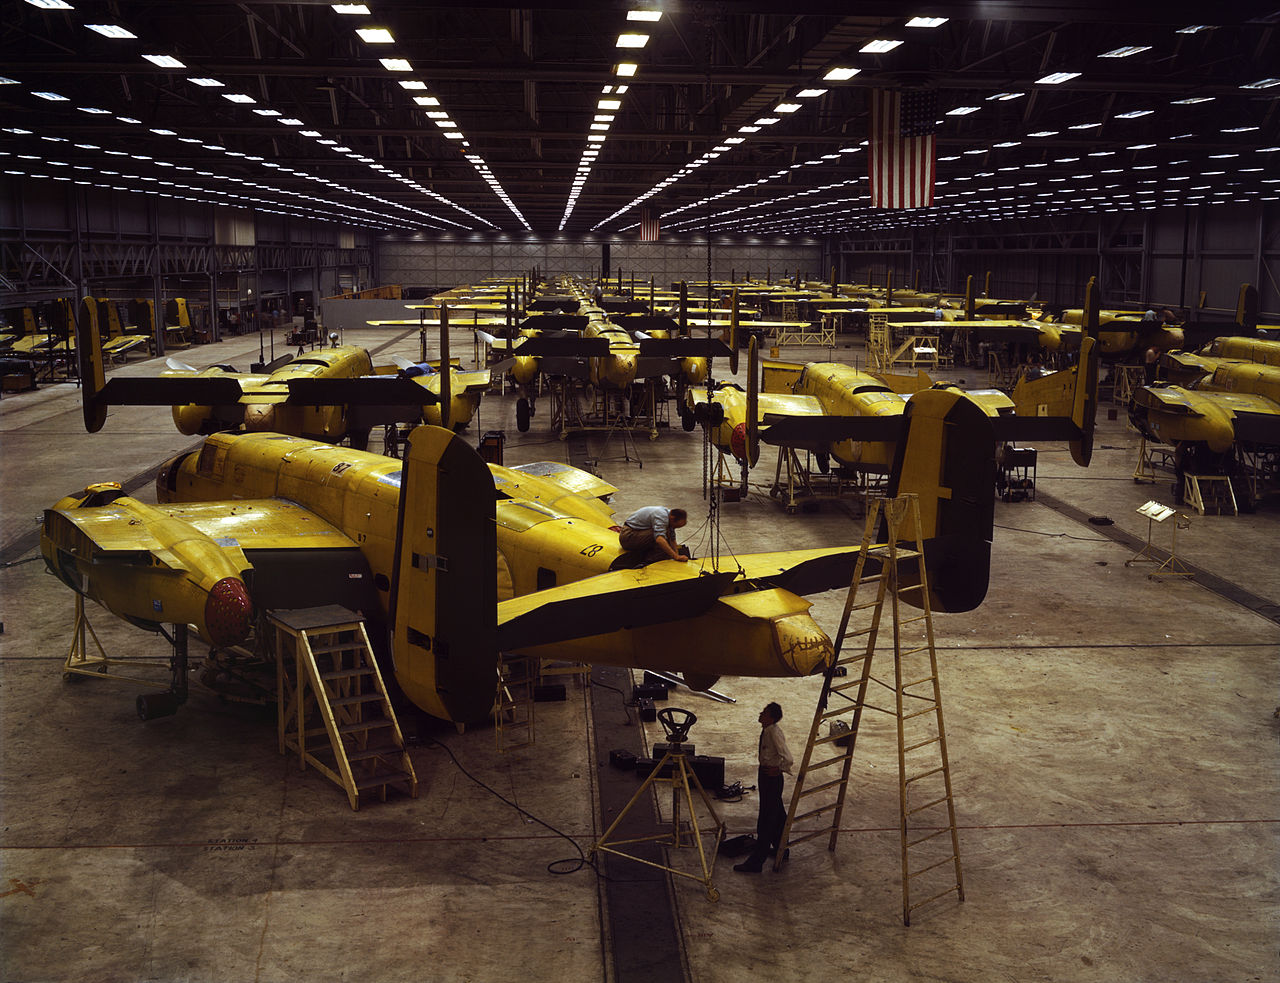 Assembling the North American B-25 Mitchell at Kansas City, Kansas (USA).